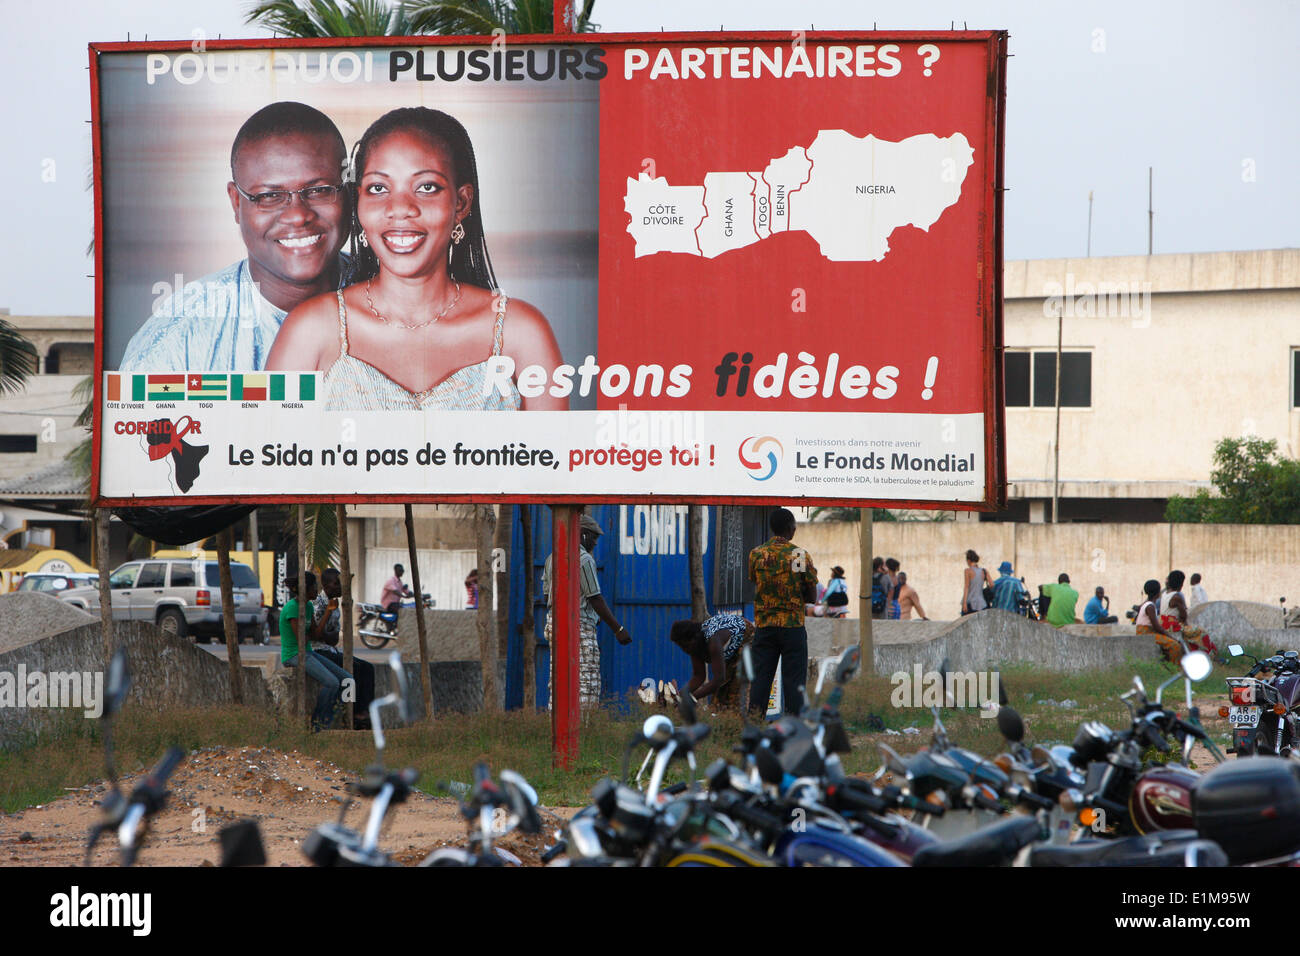 AIDS prevention billboard - Stock Image